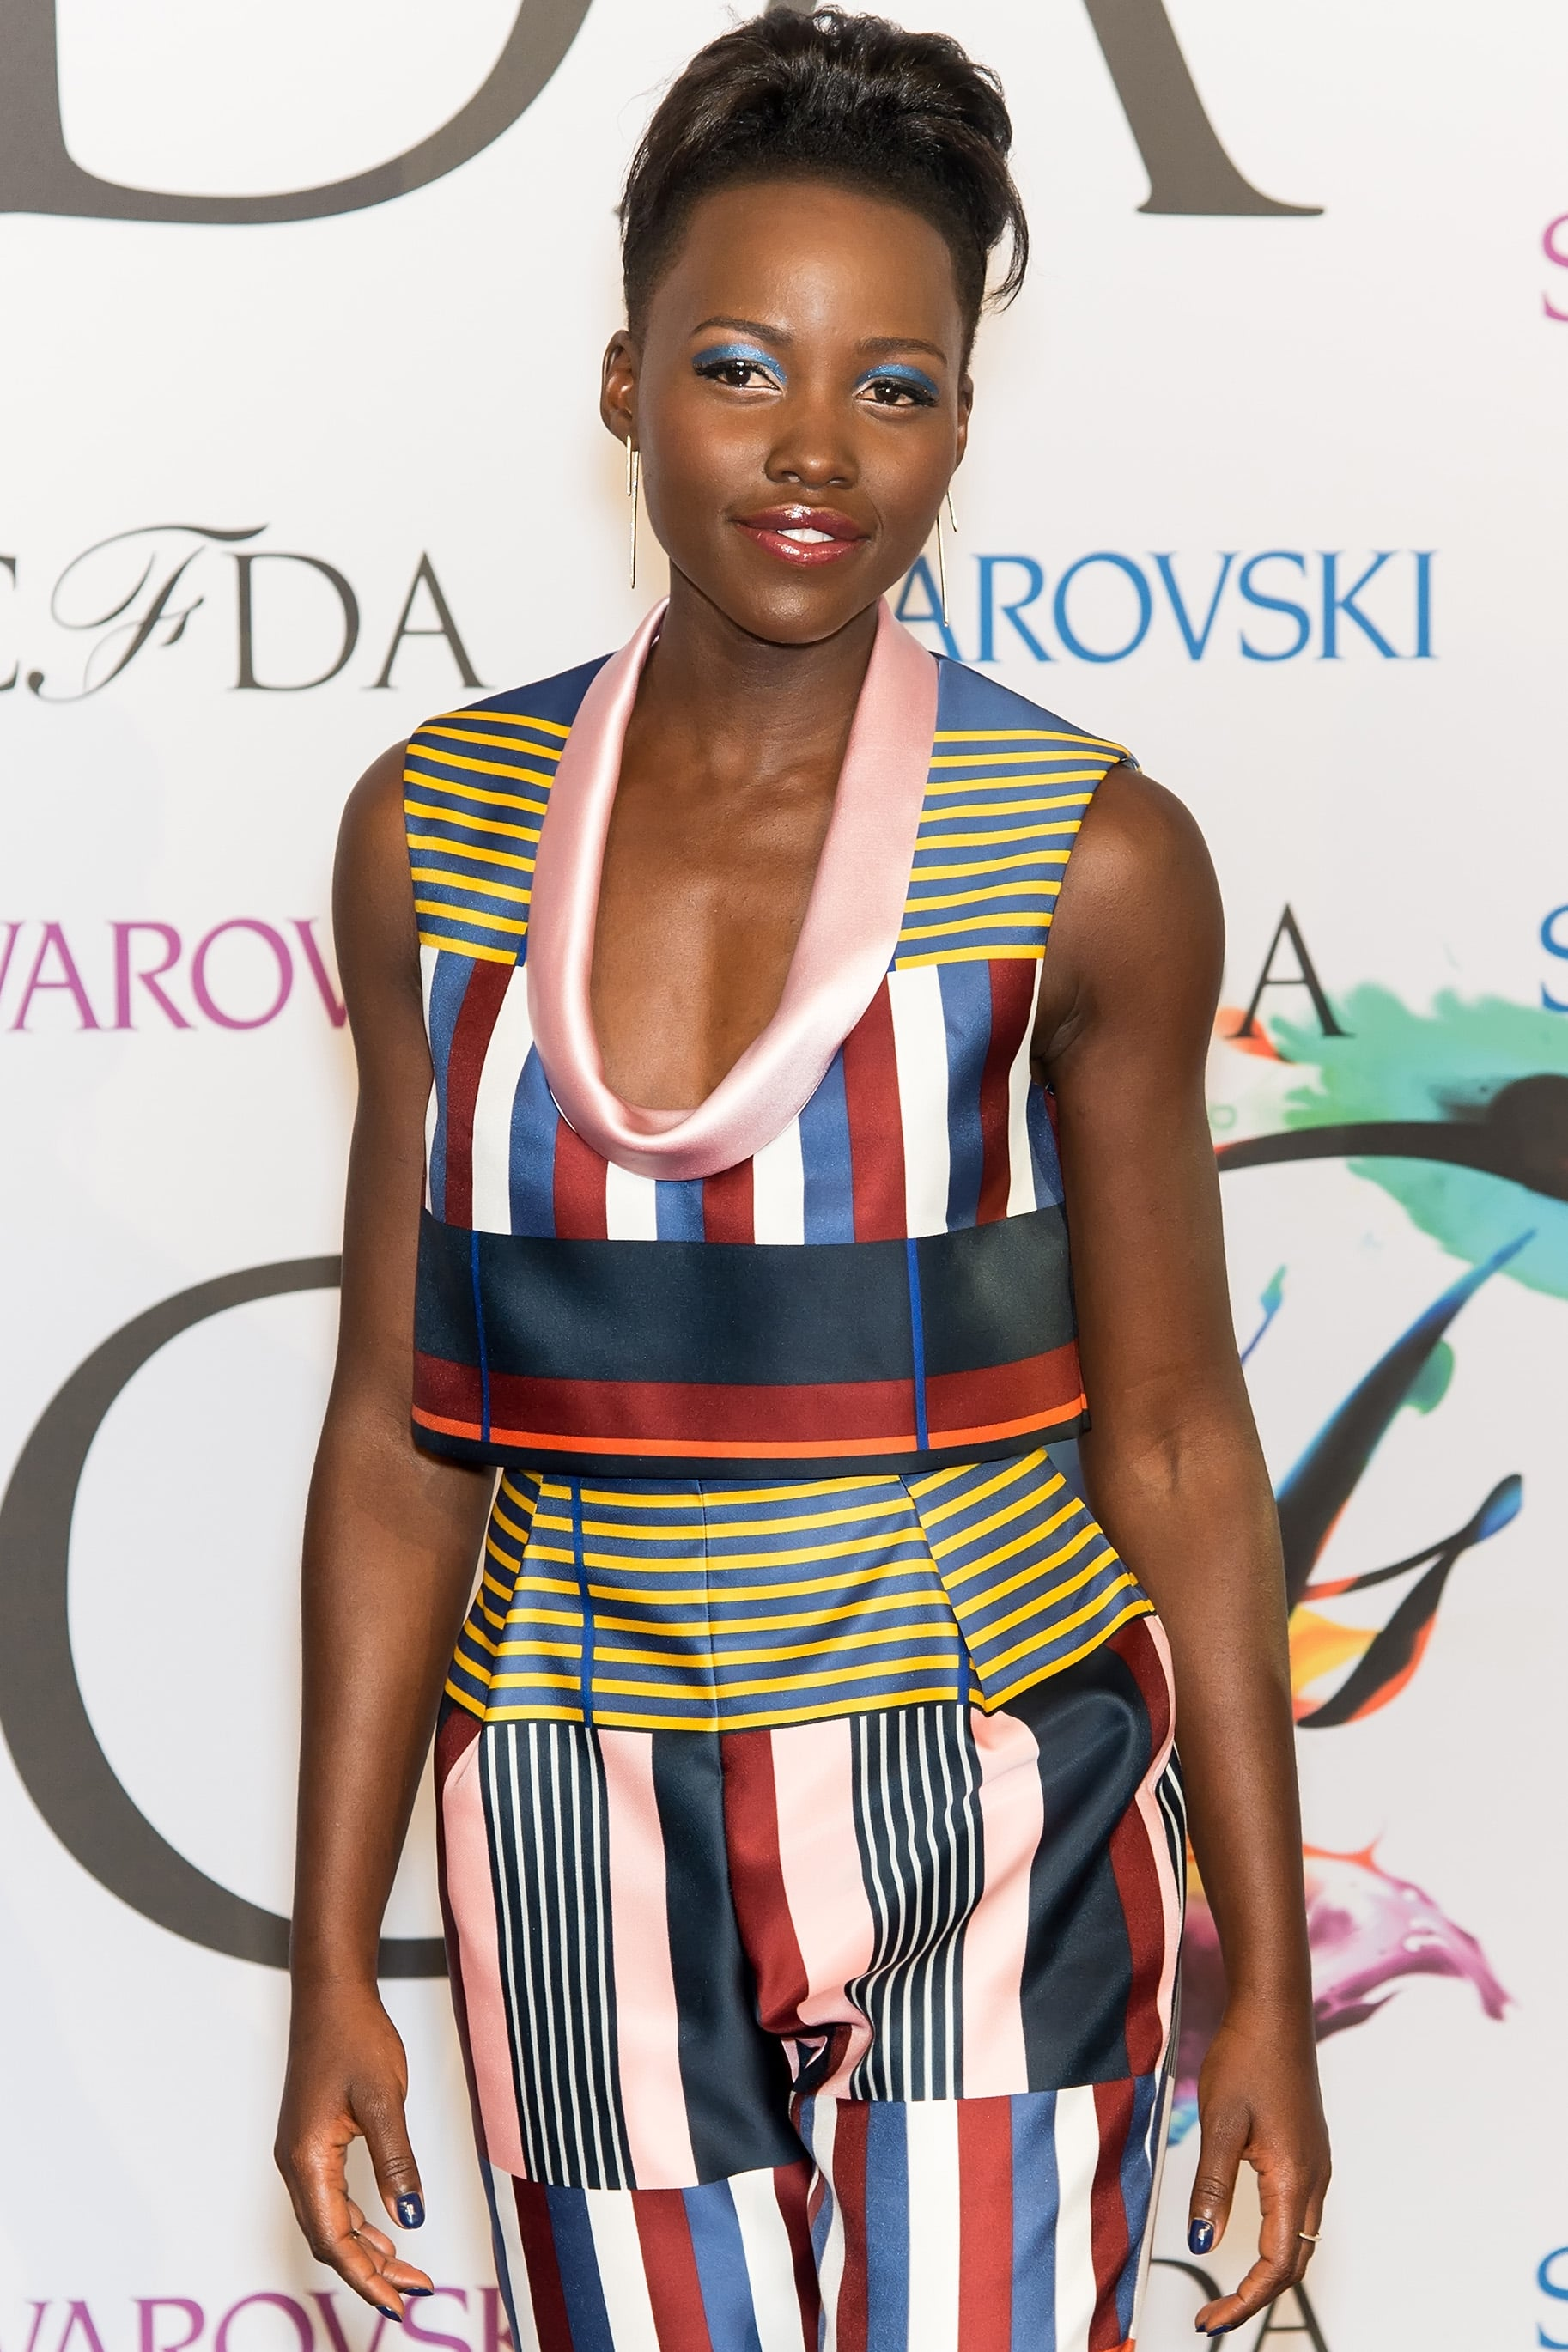 Lupita Nyong'o will star in Americanah, produced by her 12 Years a Slave costar Brad Pitt. Meanwhile, Gwendoline Christie (Game of Thrones' Brienne of Tarth) and Nyong'o joined Star Wars: Episode VII. Check out the rest of the cast!